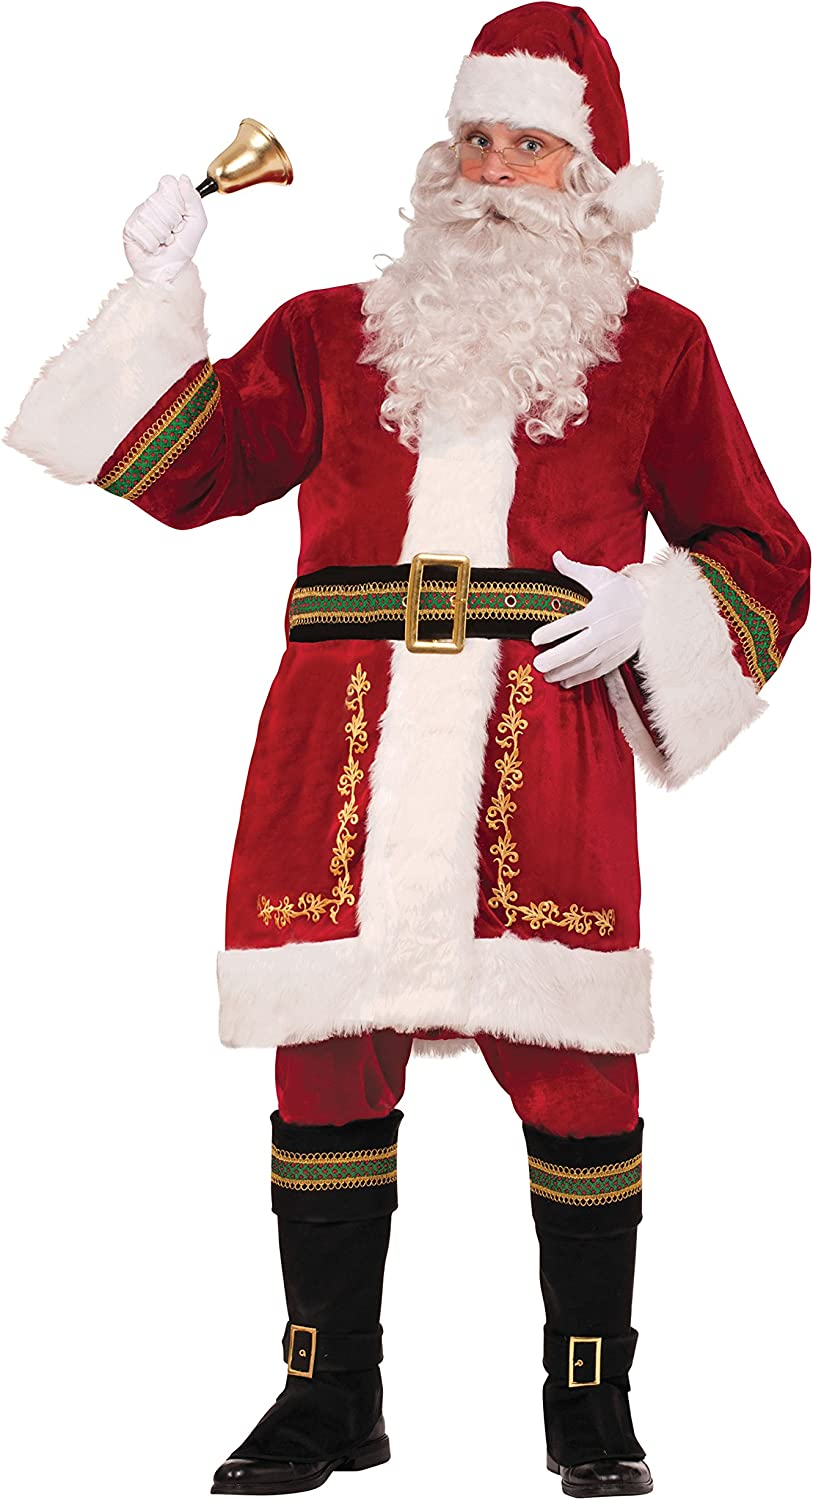 Mens Santa Claus Costume Costume Christmas Festive Seasonal Fancy Dress Cosplay Chest Size 44